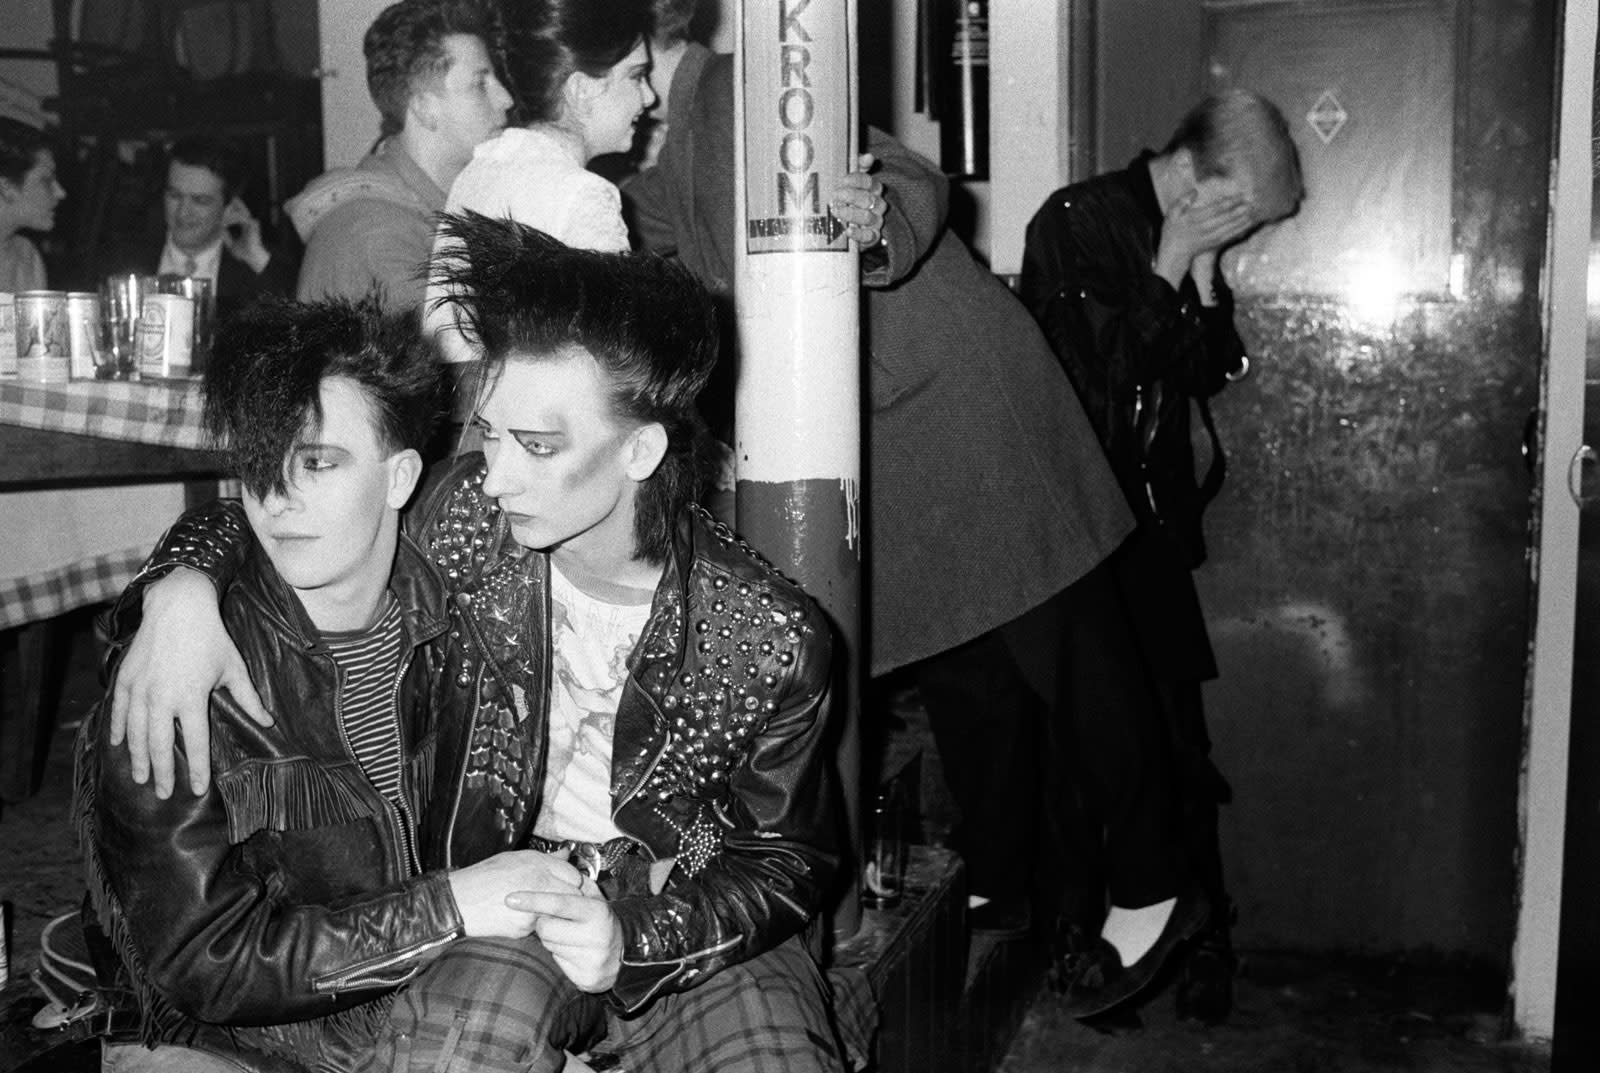 Homer Sykes, George O'Dowl as Boy George at the Blitz Club, Covent Garden, London, 1980